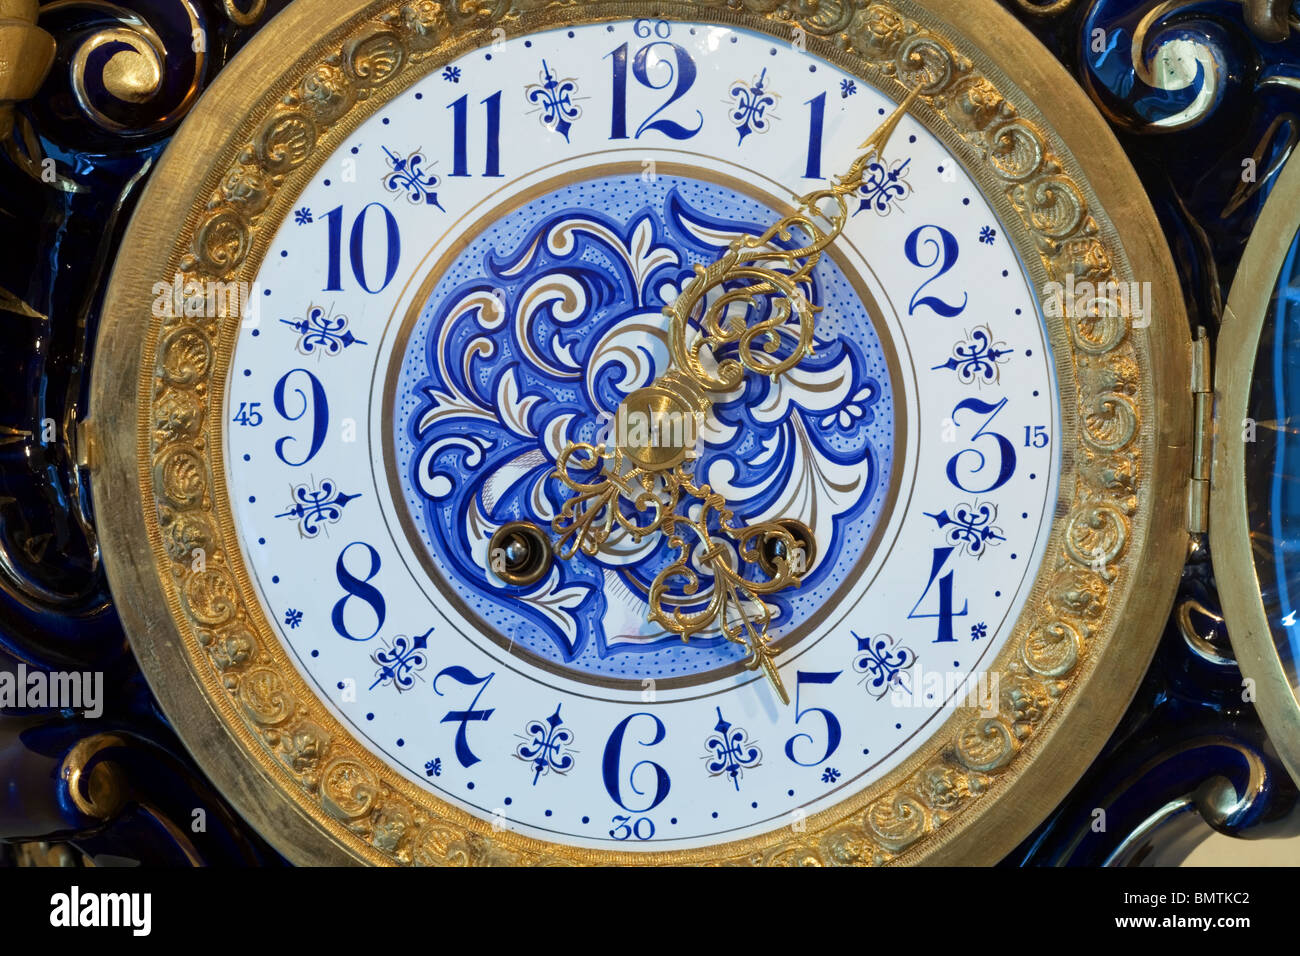 Vintage Table or Long Case Clock - Stock Image